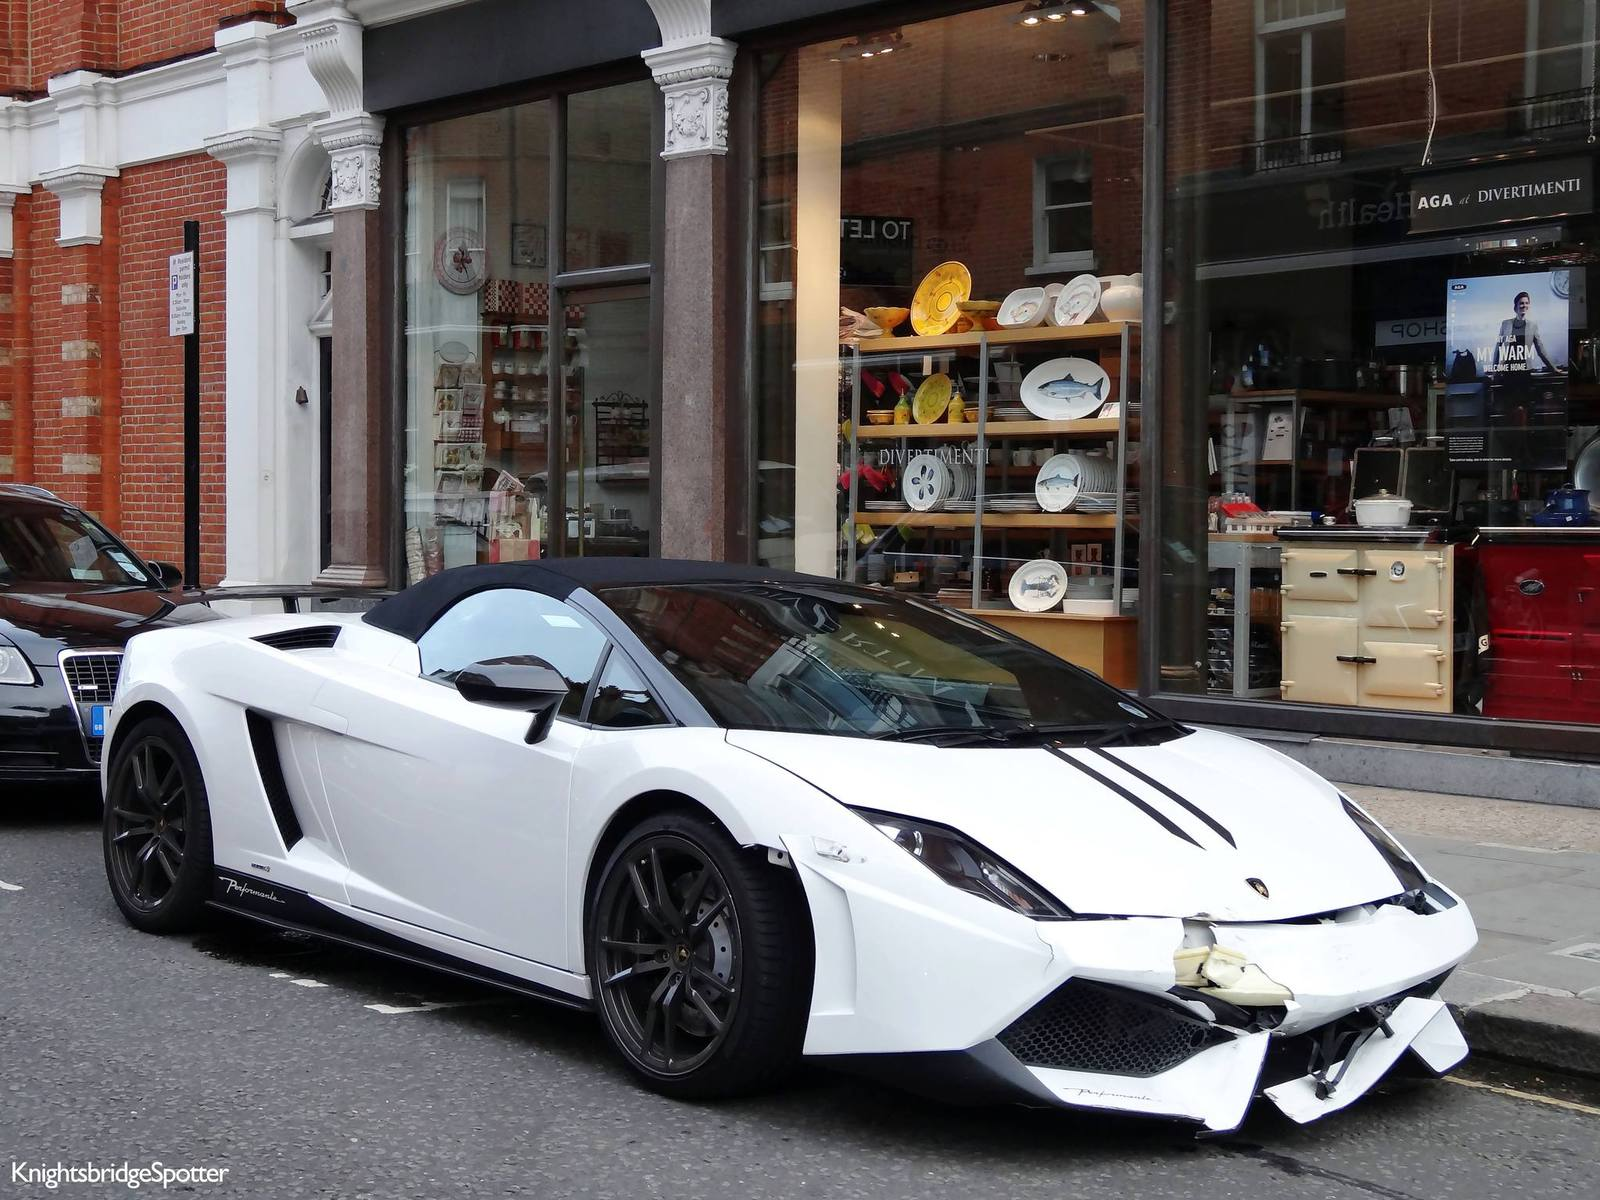 Lamborghini Gallardo Lp570 4 Performante Smashes Front End In London